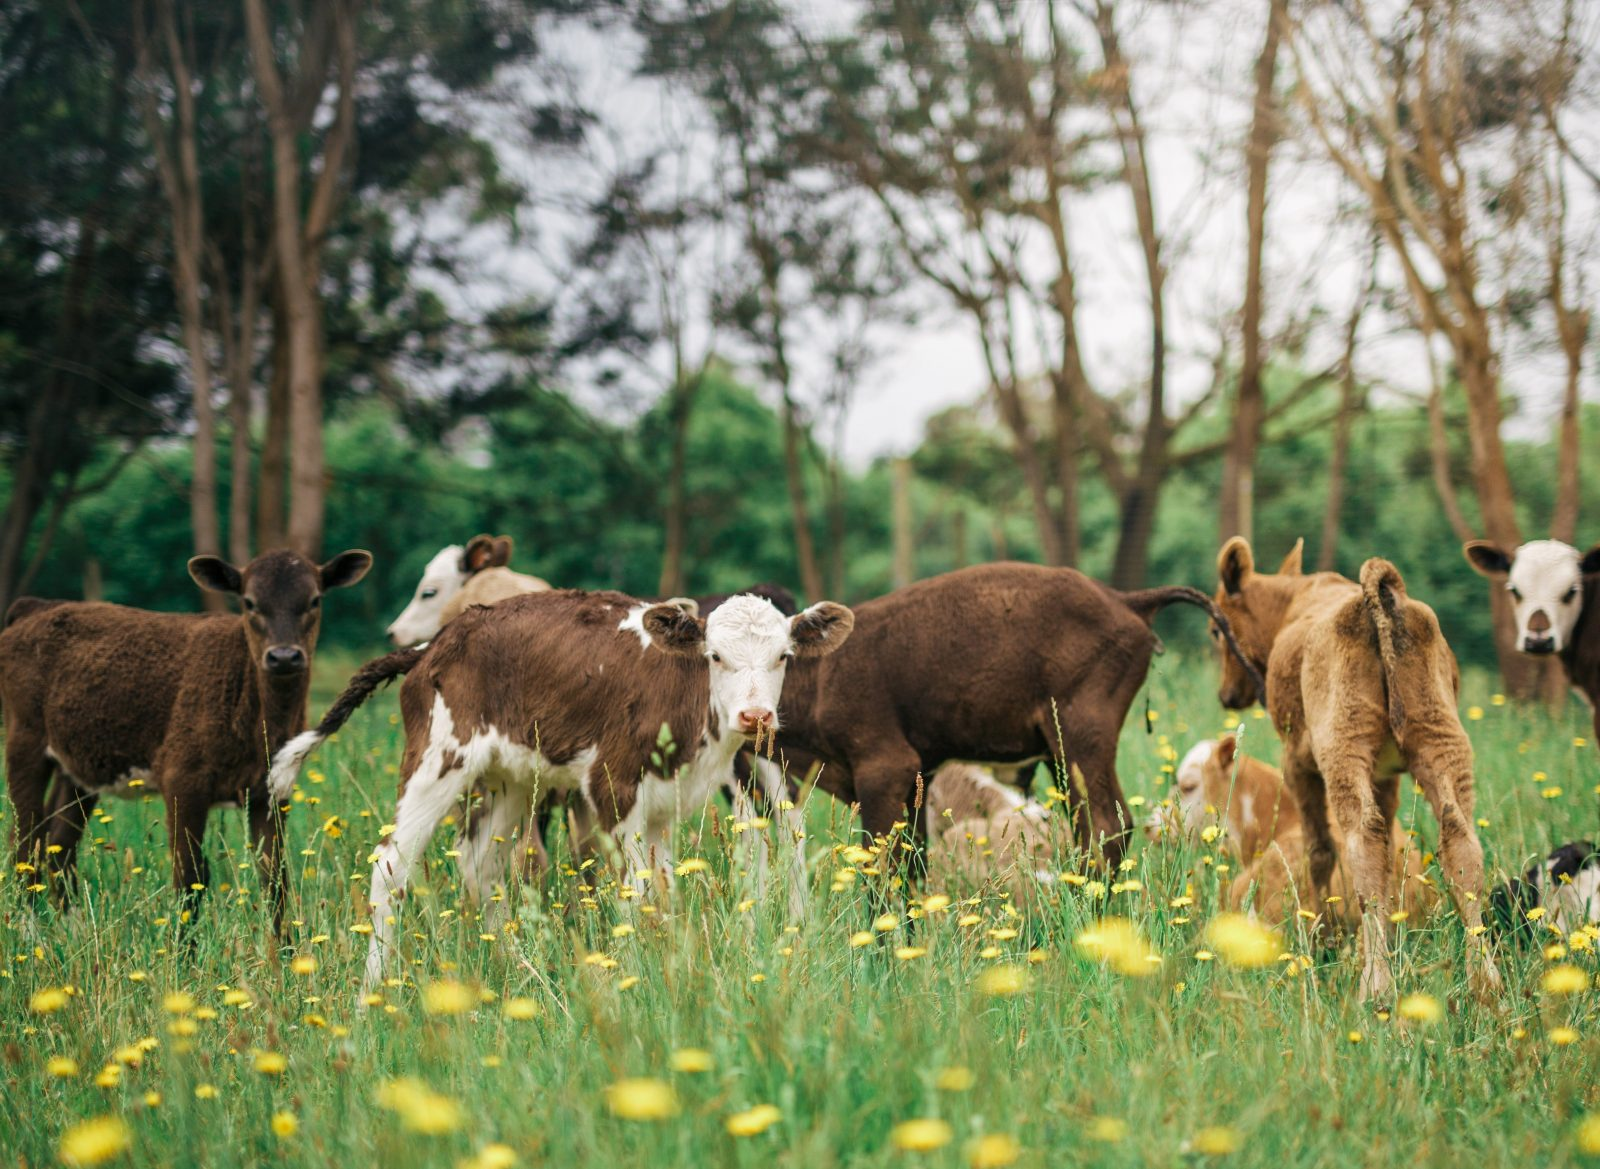 Dairy cows and calves at Grennels Dairy Farm, during Farmgate Festival